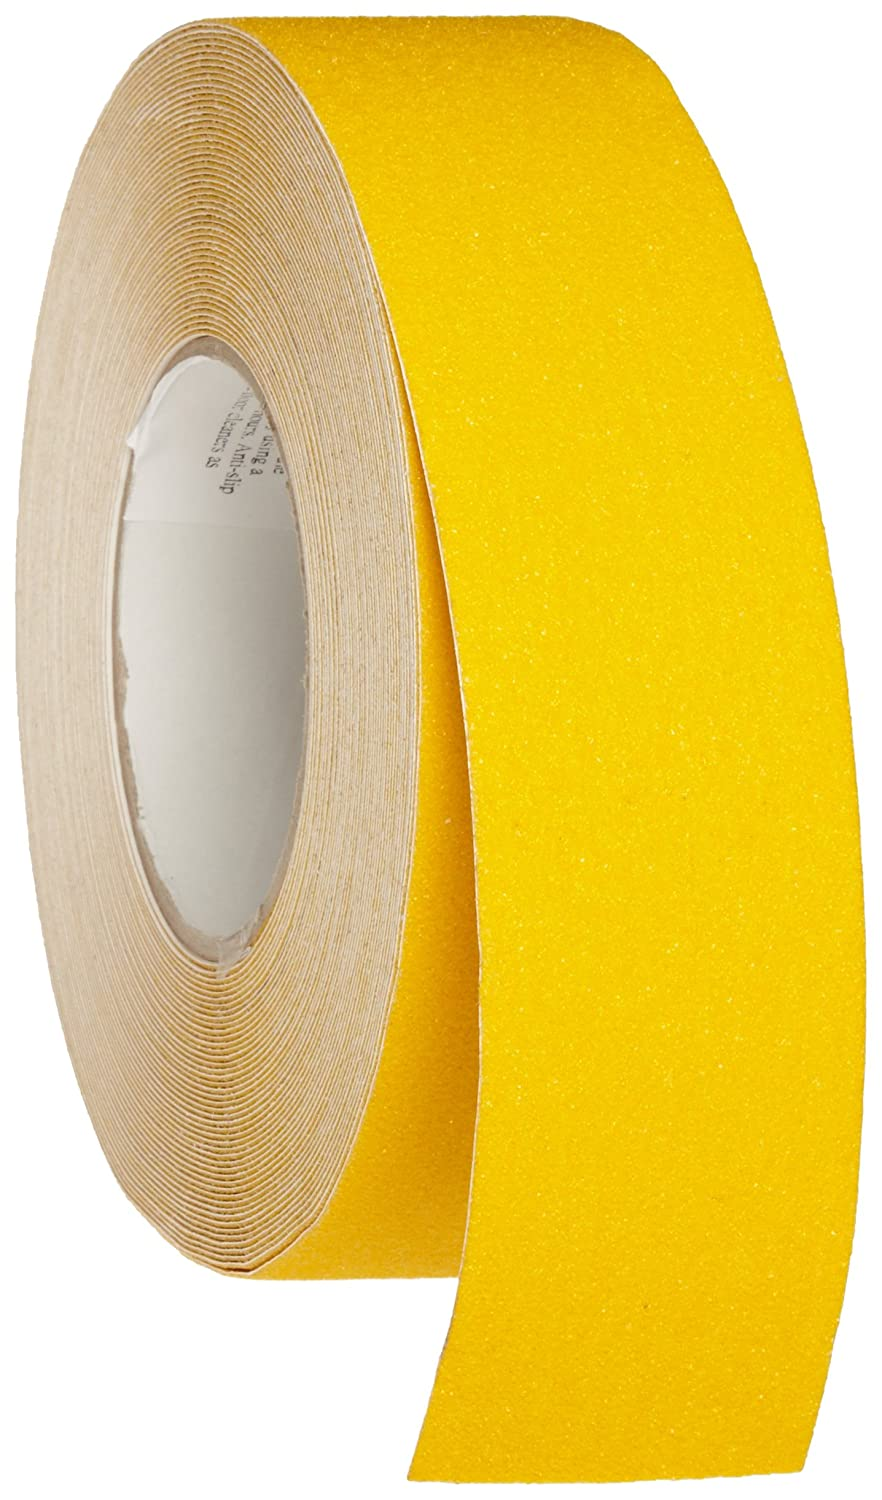 Brady 60' Length, 2' Width, B-916 Grit-Coated Polyester Tape, Safety Yellow Color Anti-Skid Tape Roll Mounted 2 Width 78091